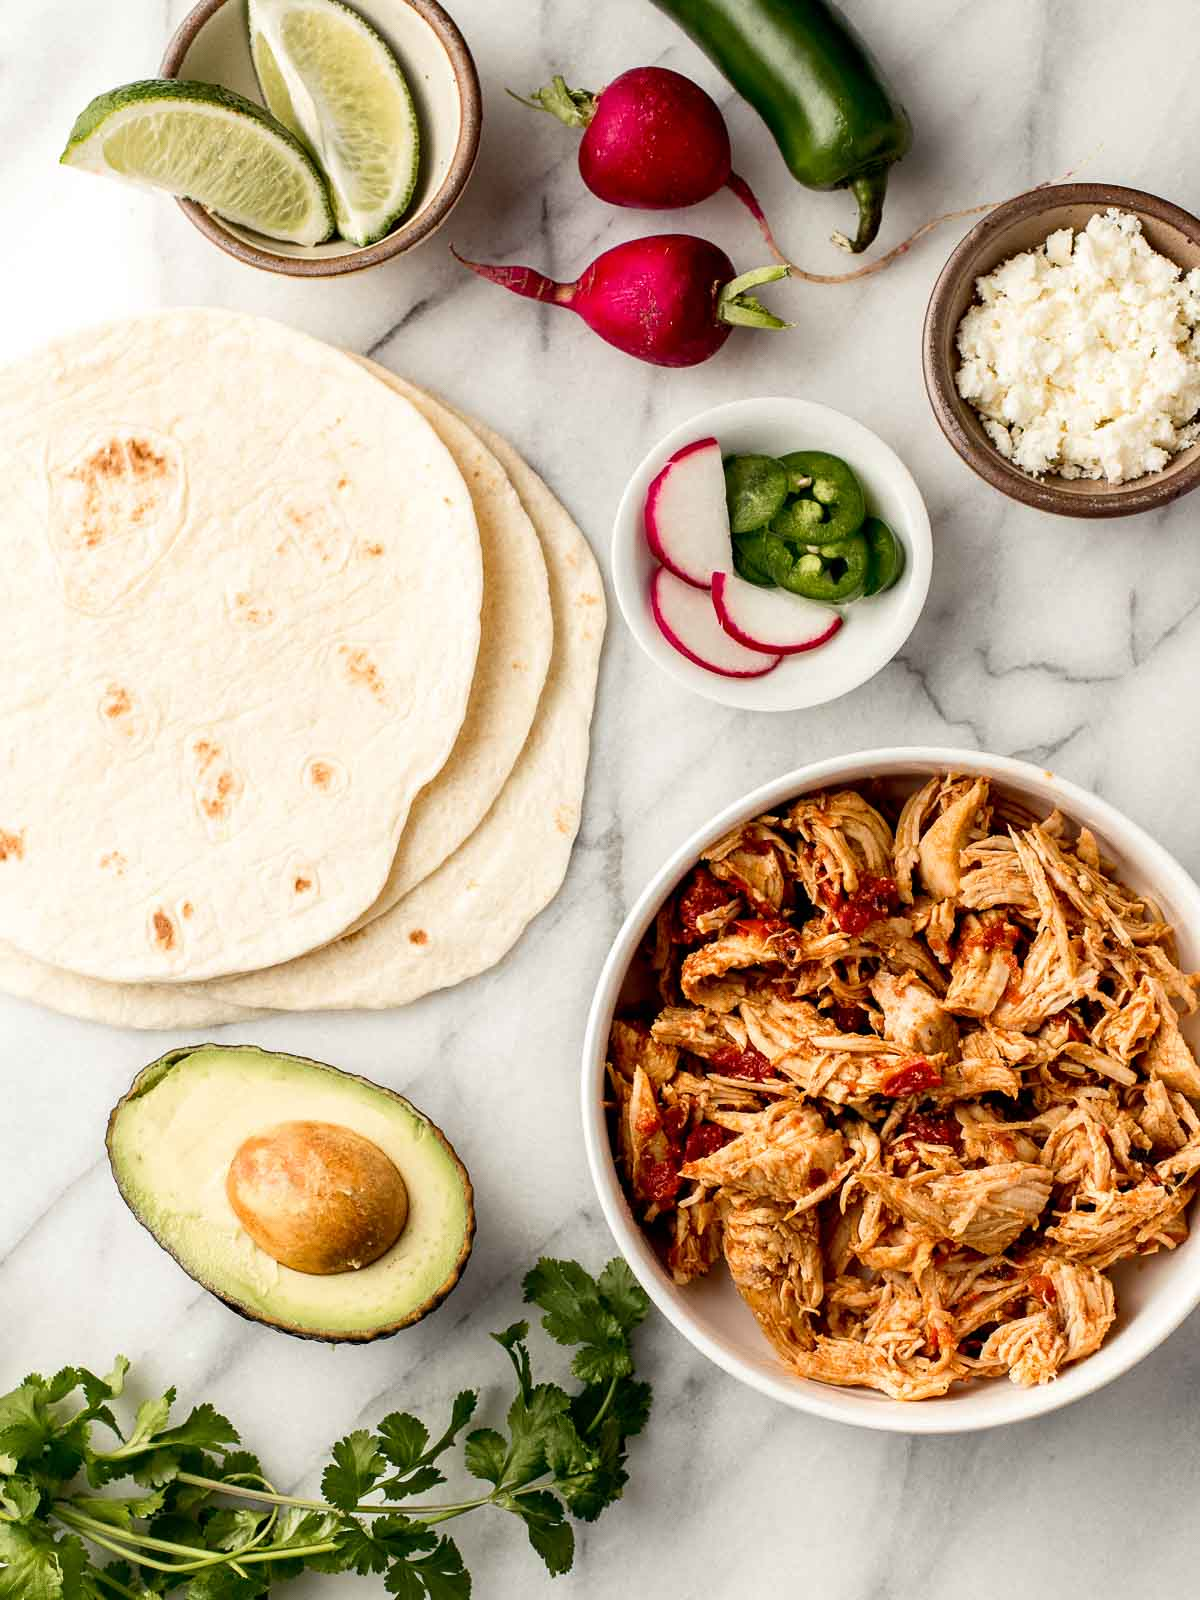 Mexican Shredded Chicken tacos ingredients on a table.